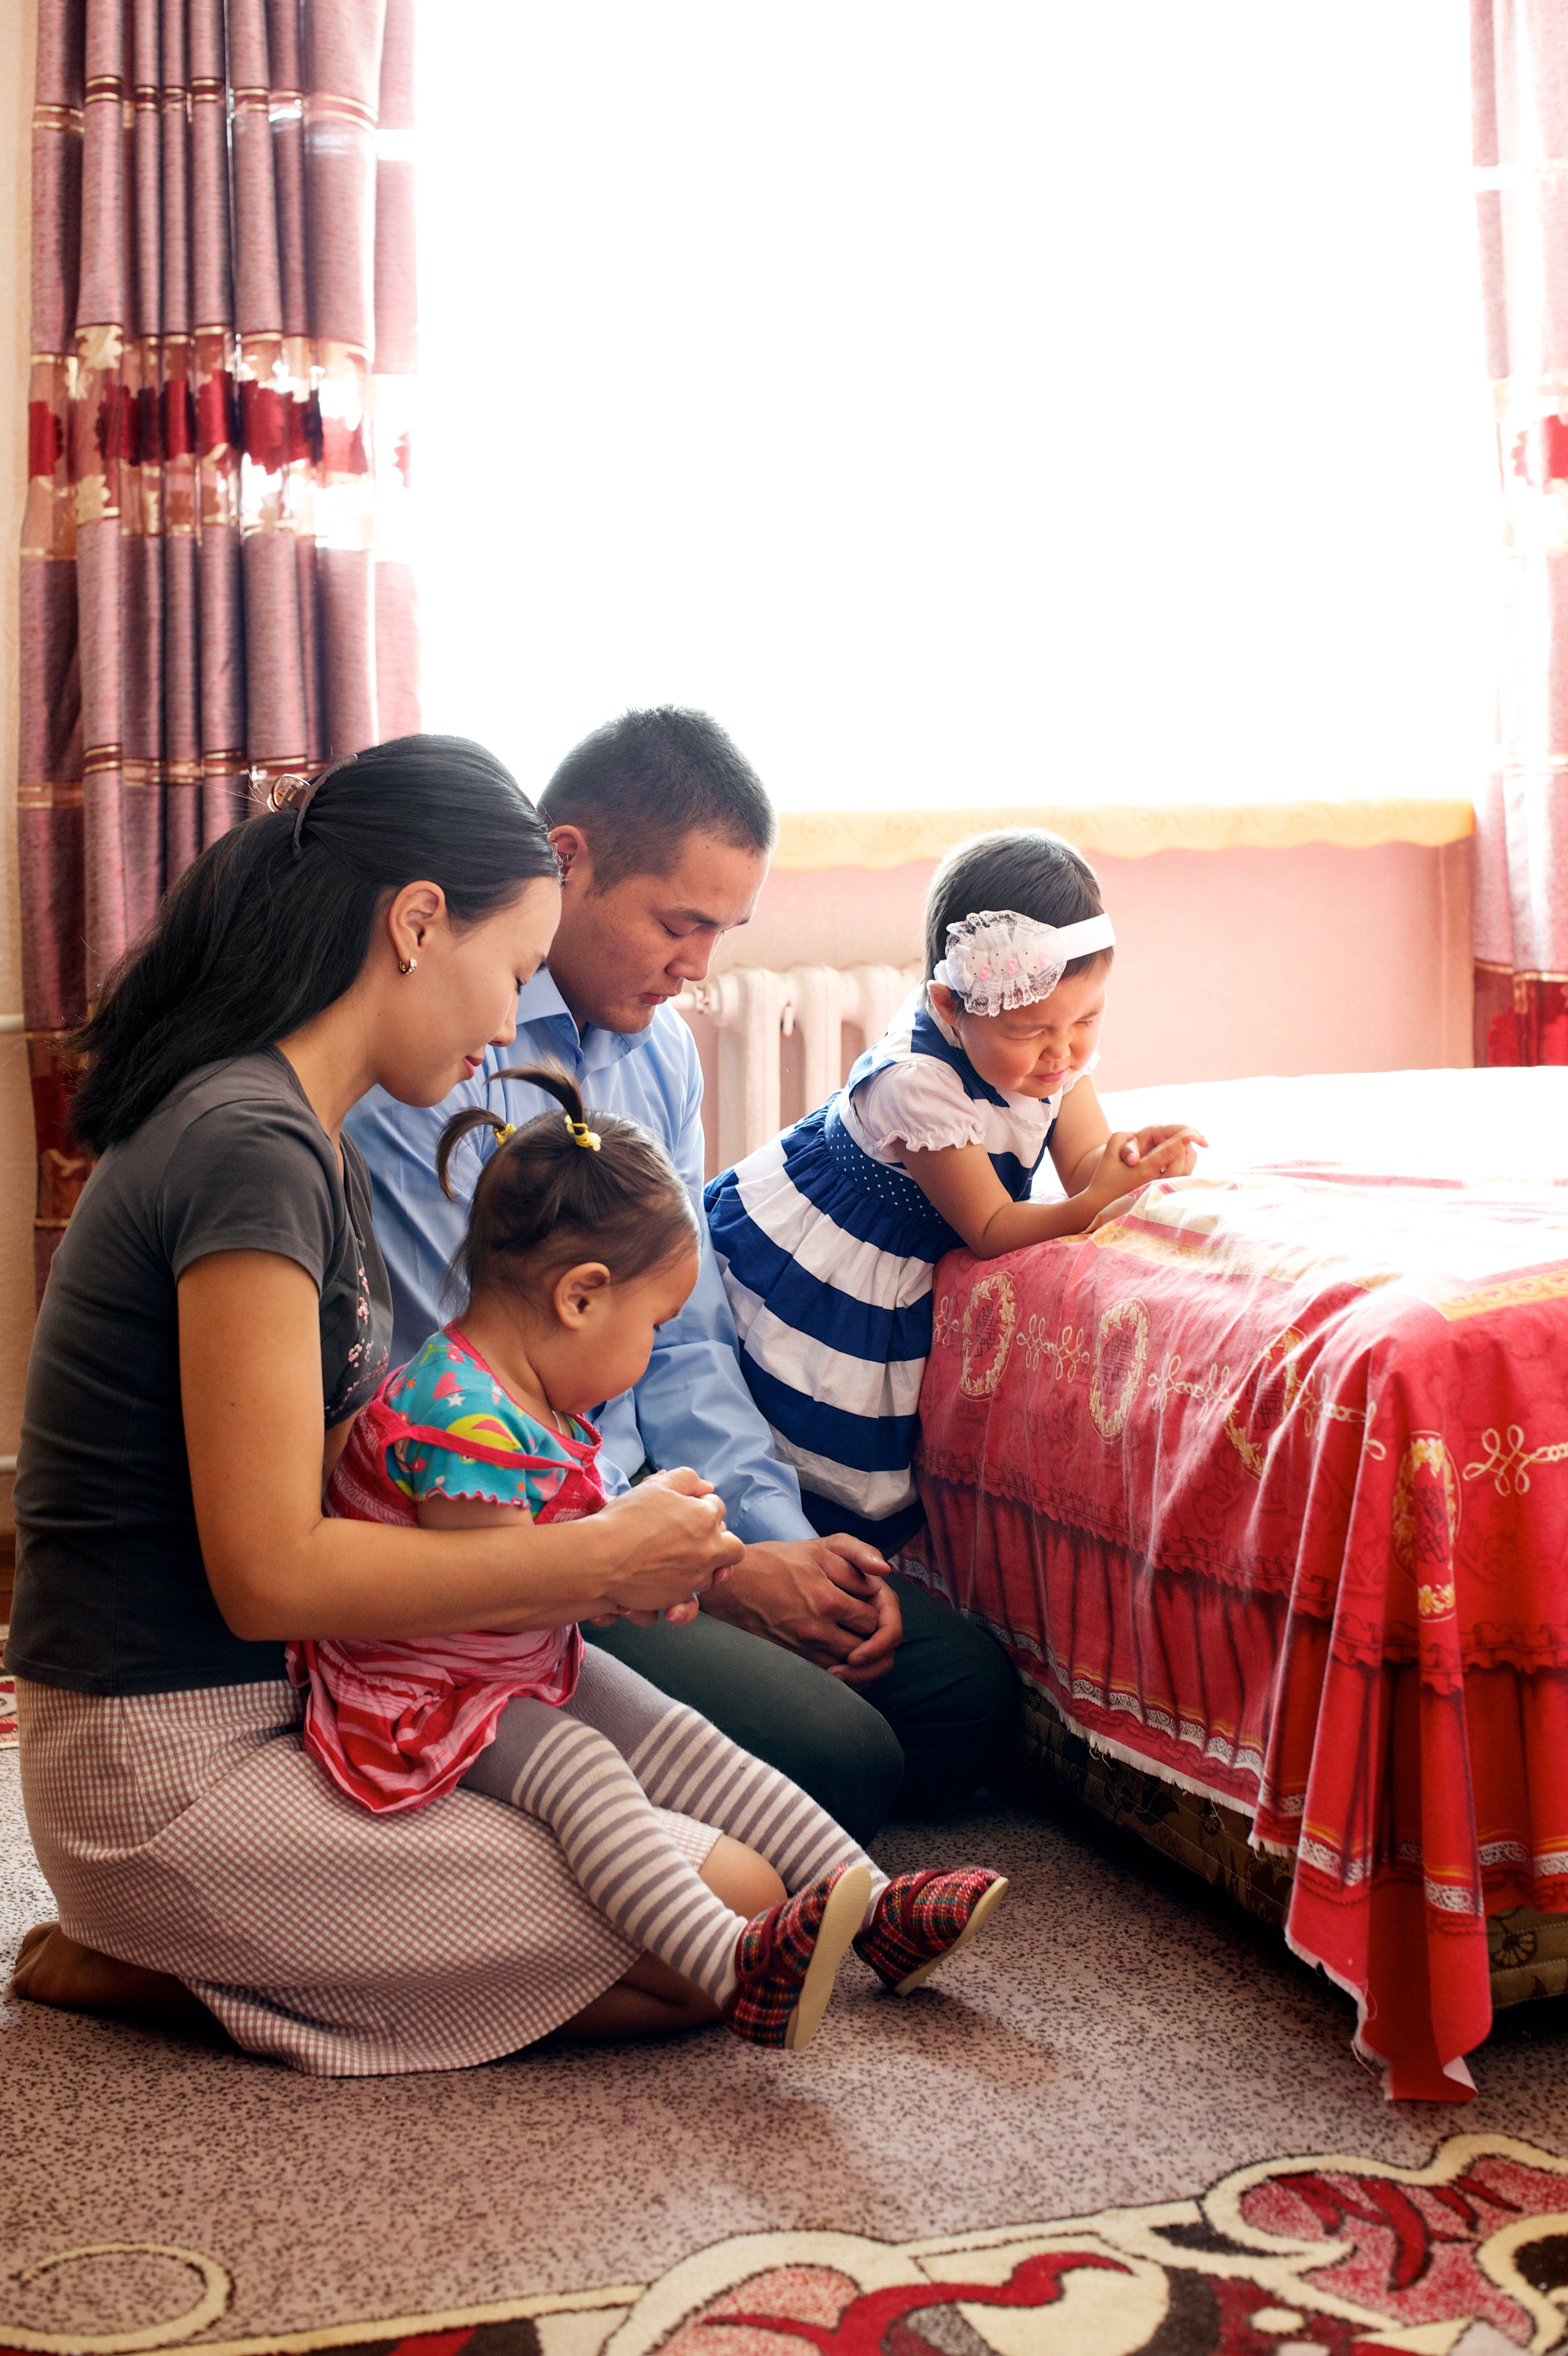 A family kneeling by the bed to pray together.